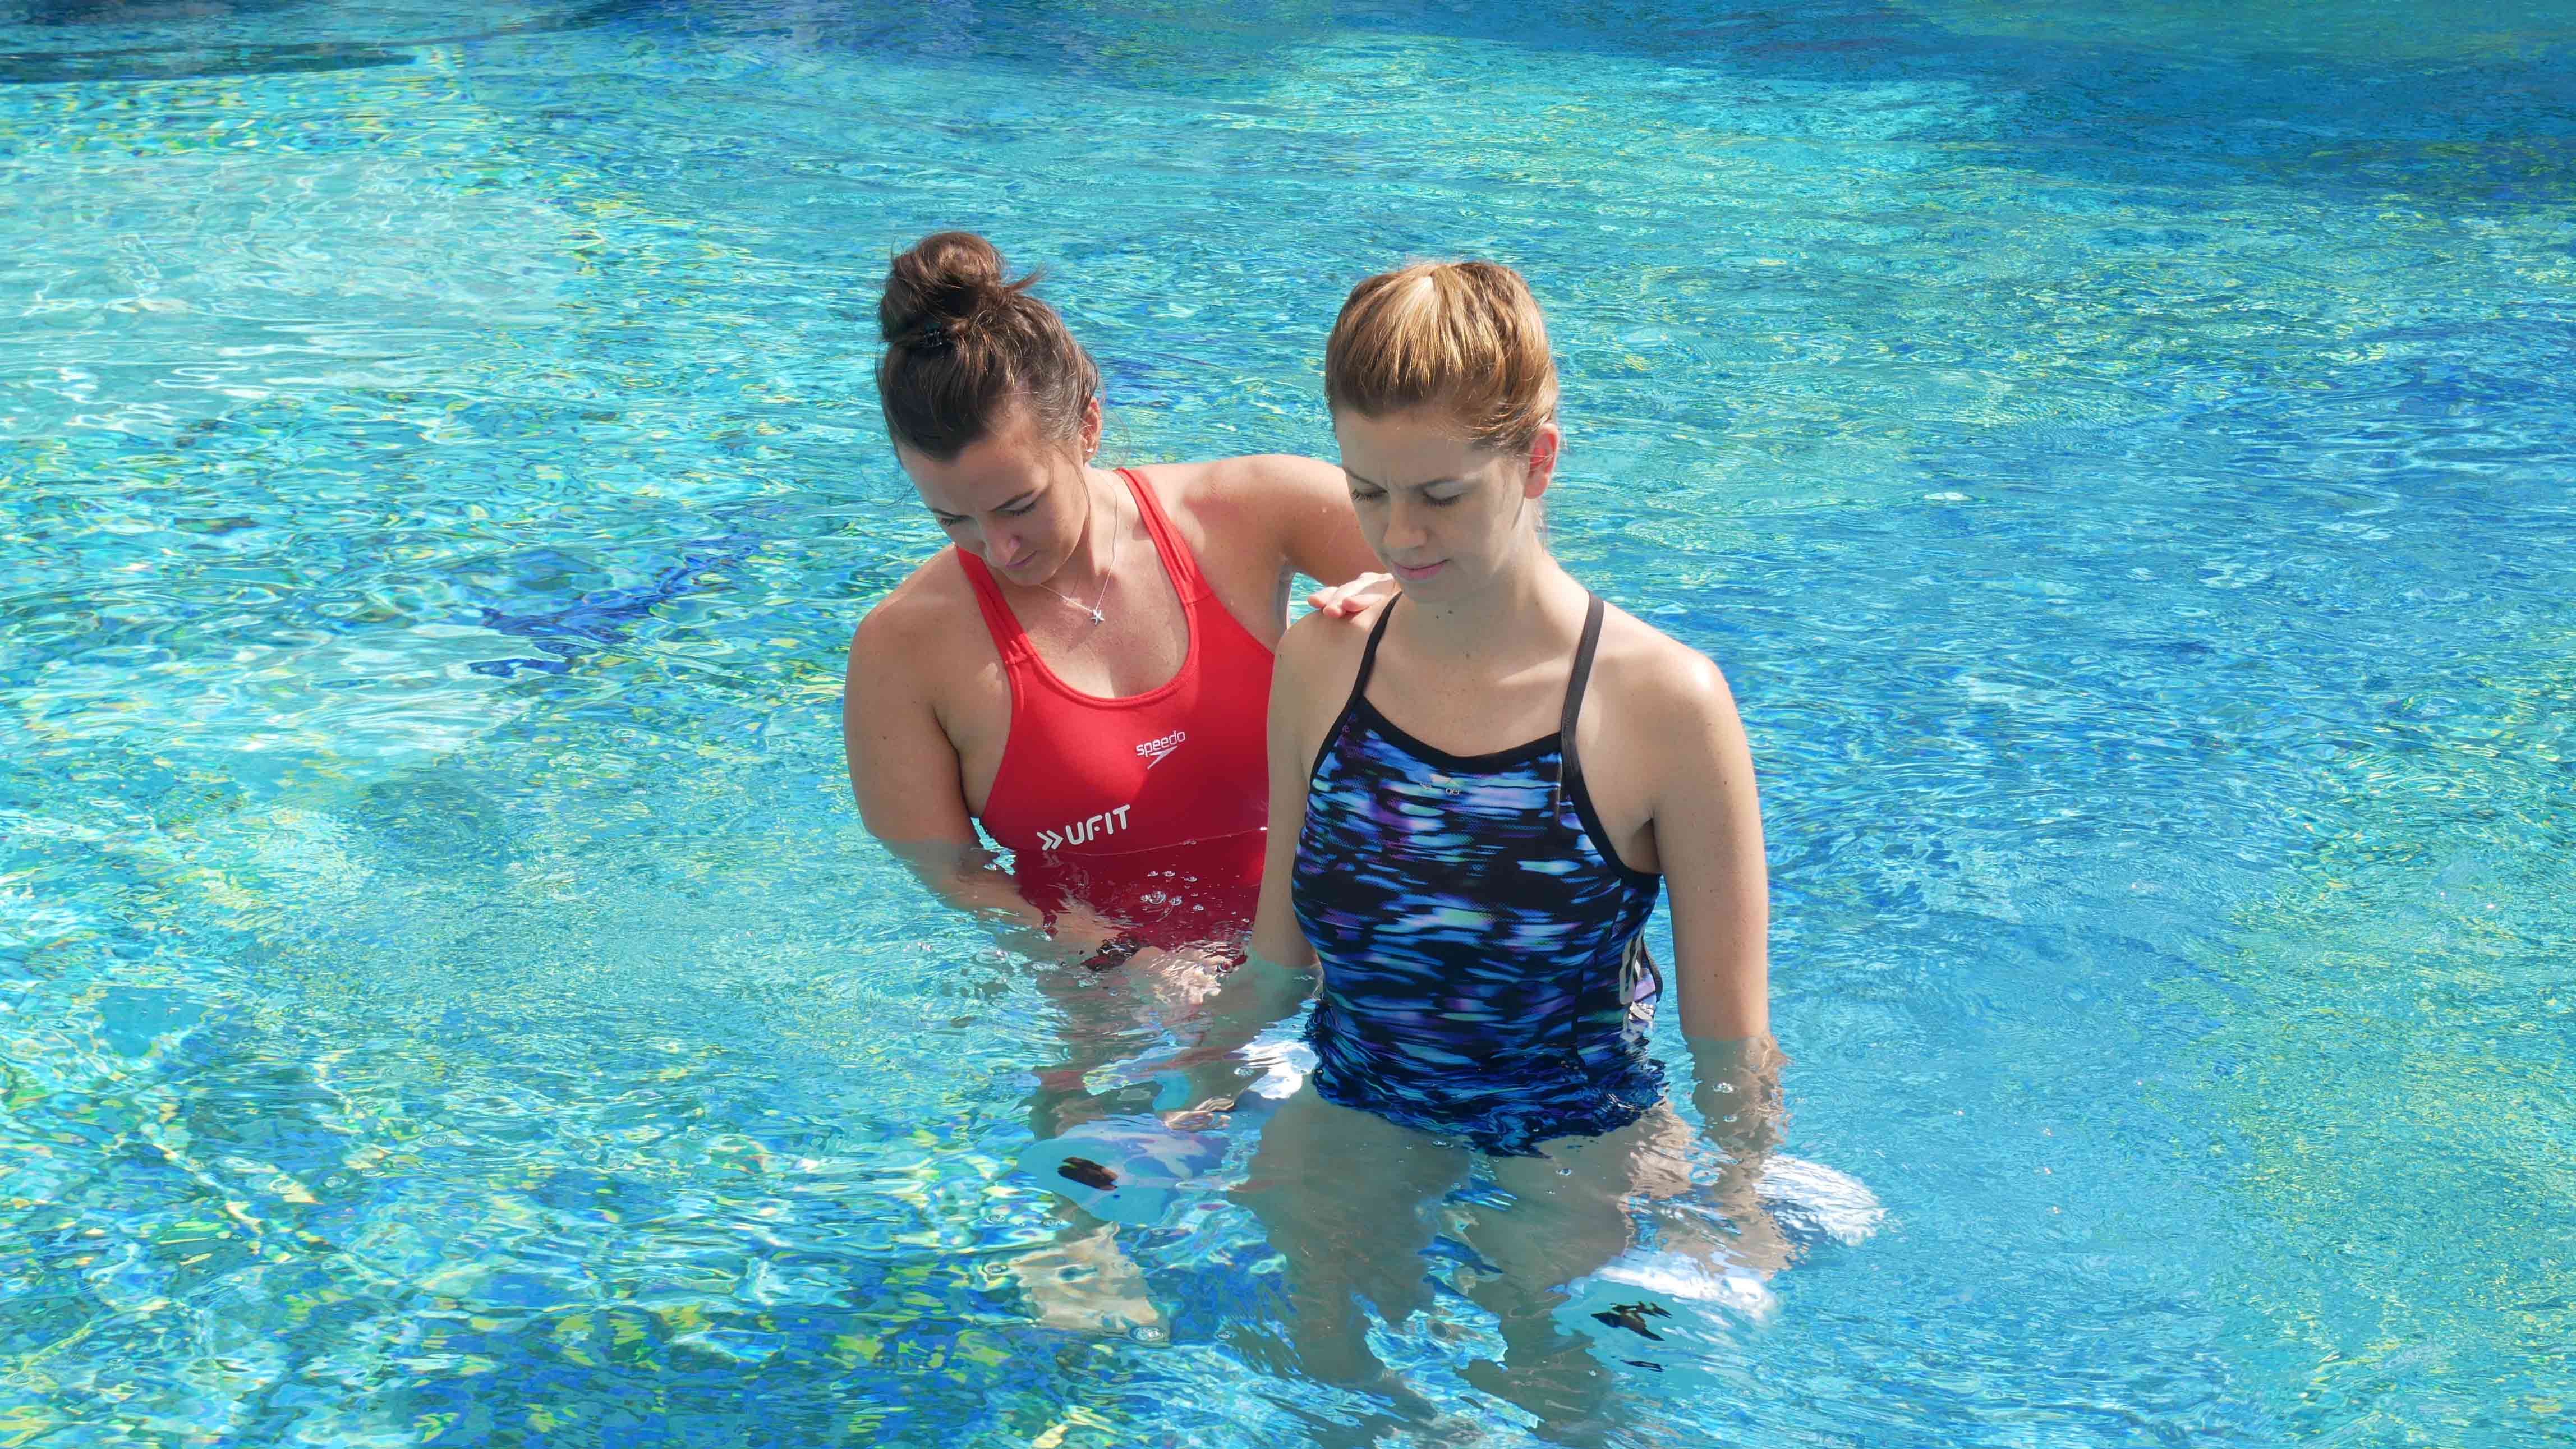 Hydrotherapy-in-the-pool